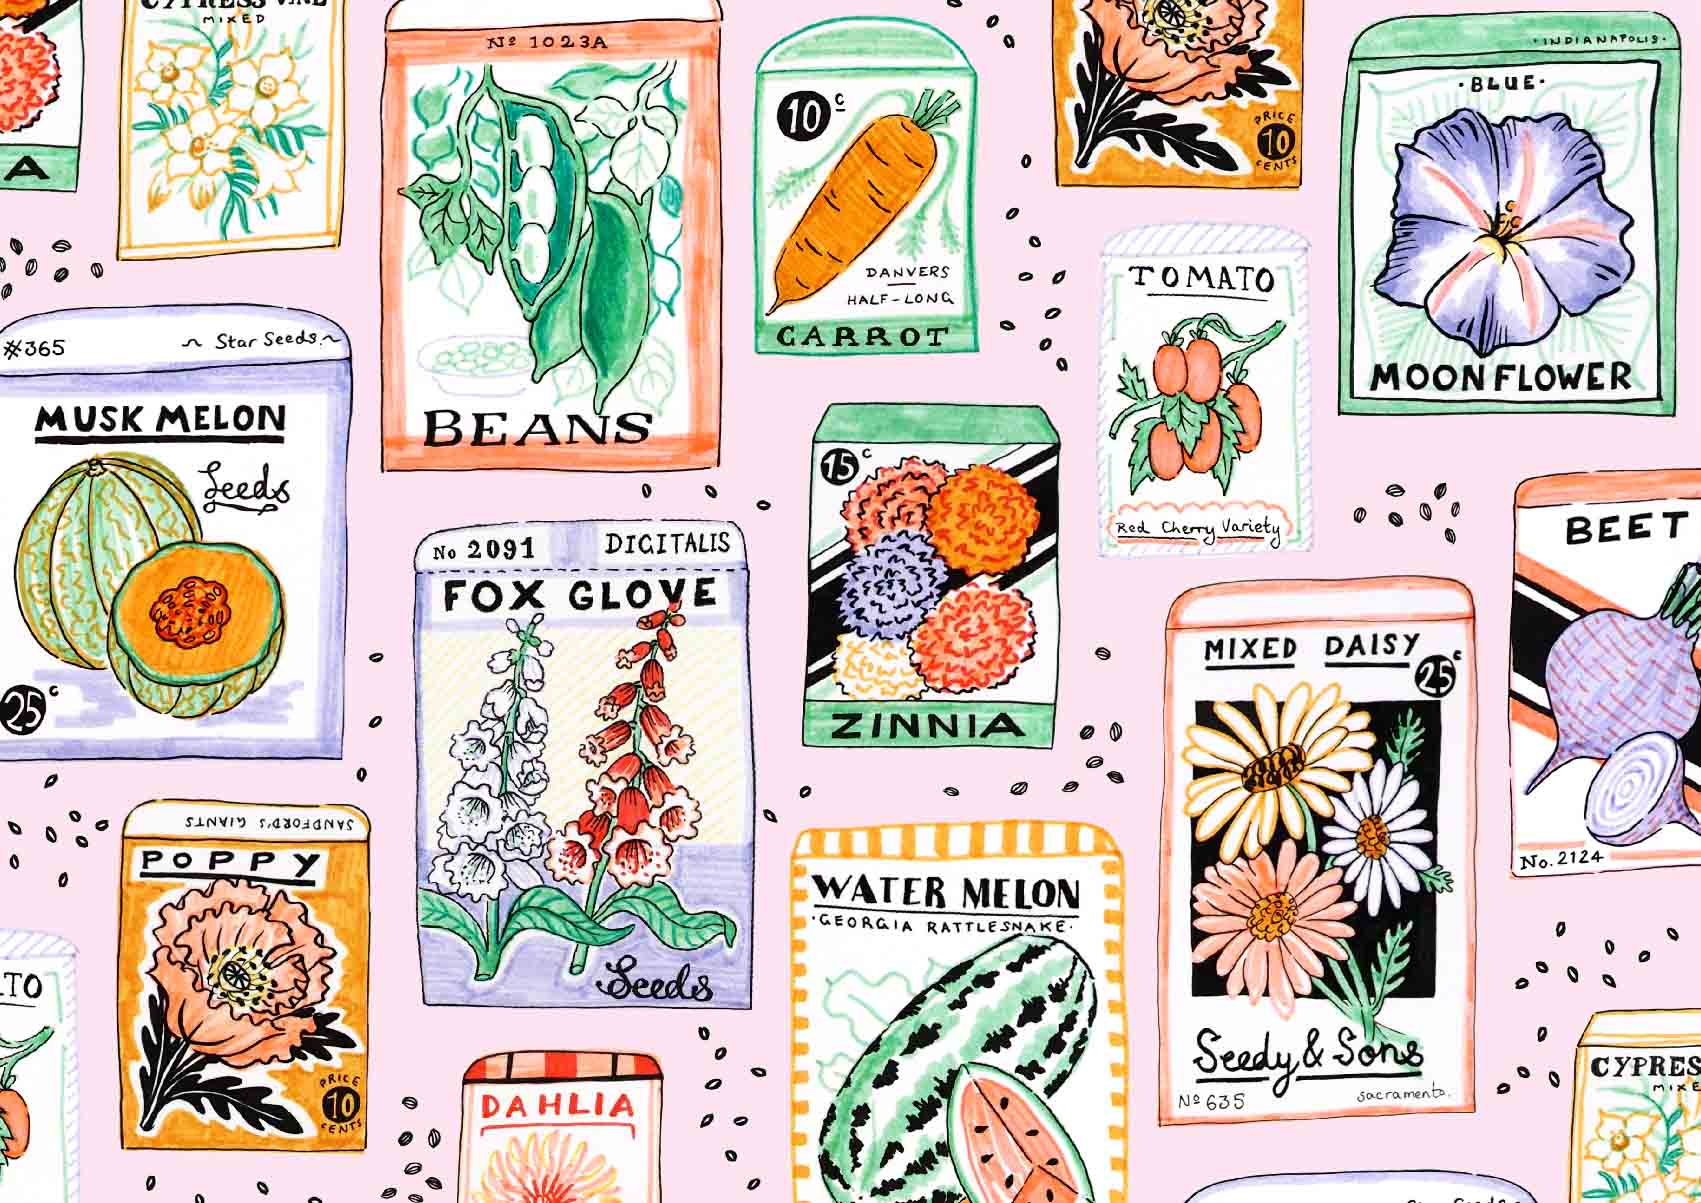 Seed-Packet-Collection-Illustrated-by-Jacqueline-Colley.jpg